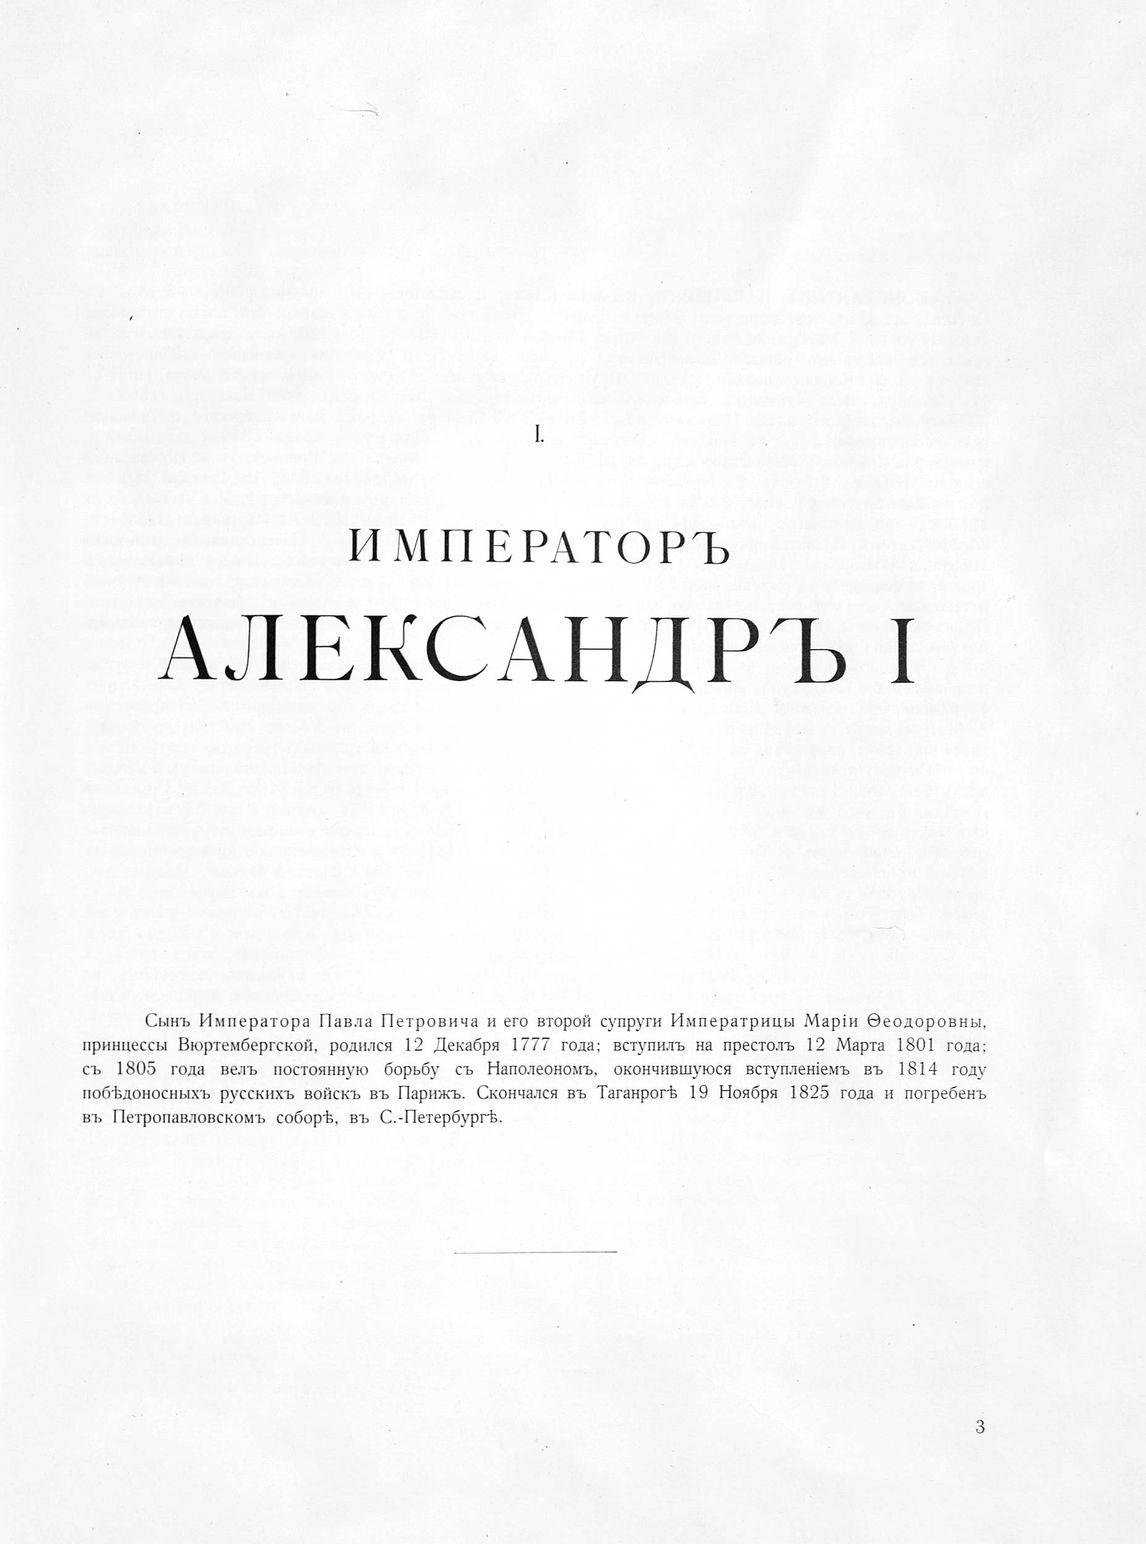 http://elib.shpl.ru/pages/561868/zooms/7